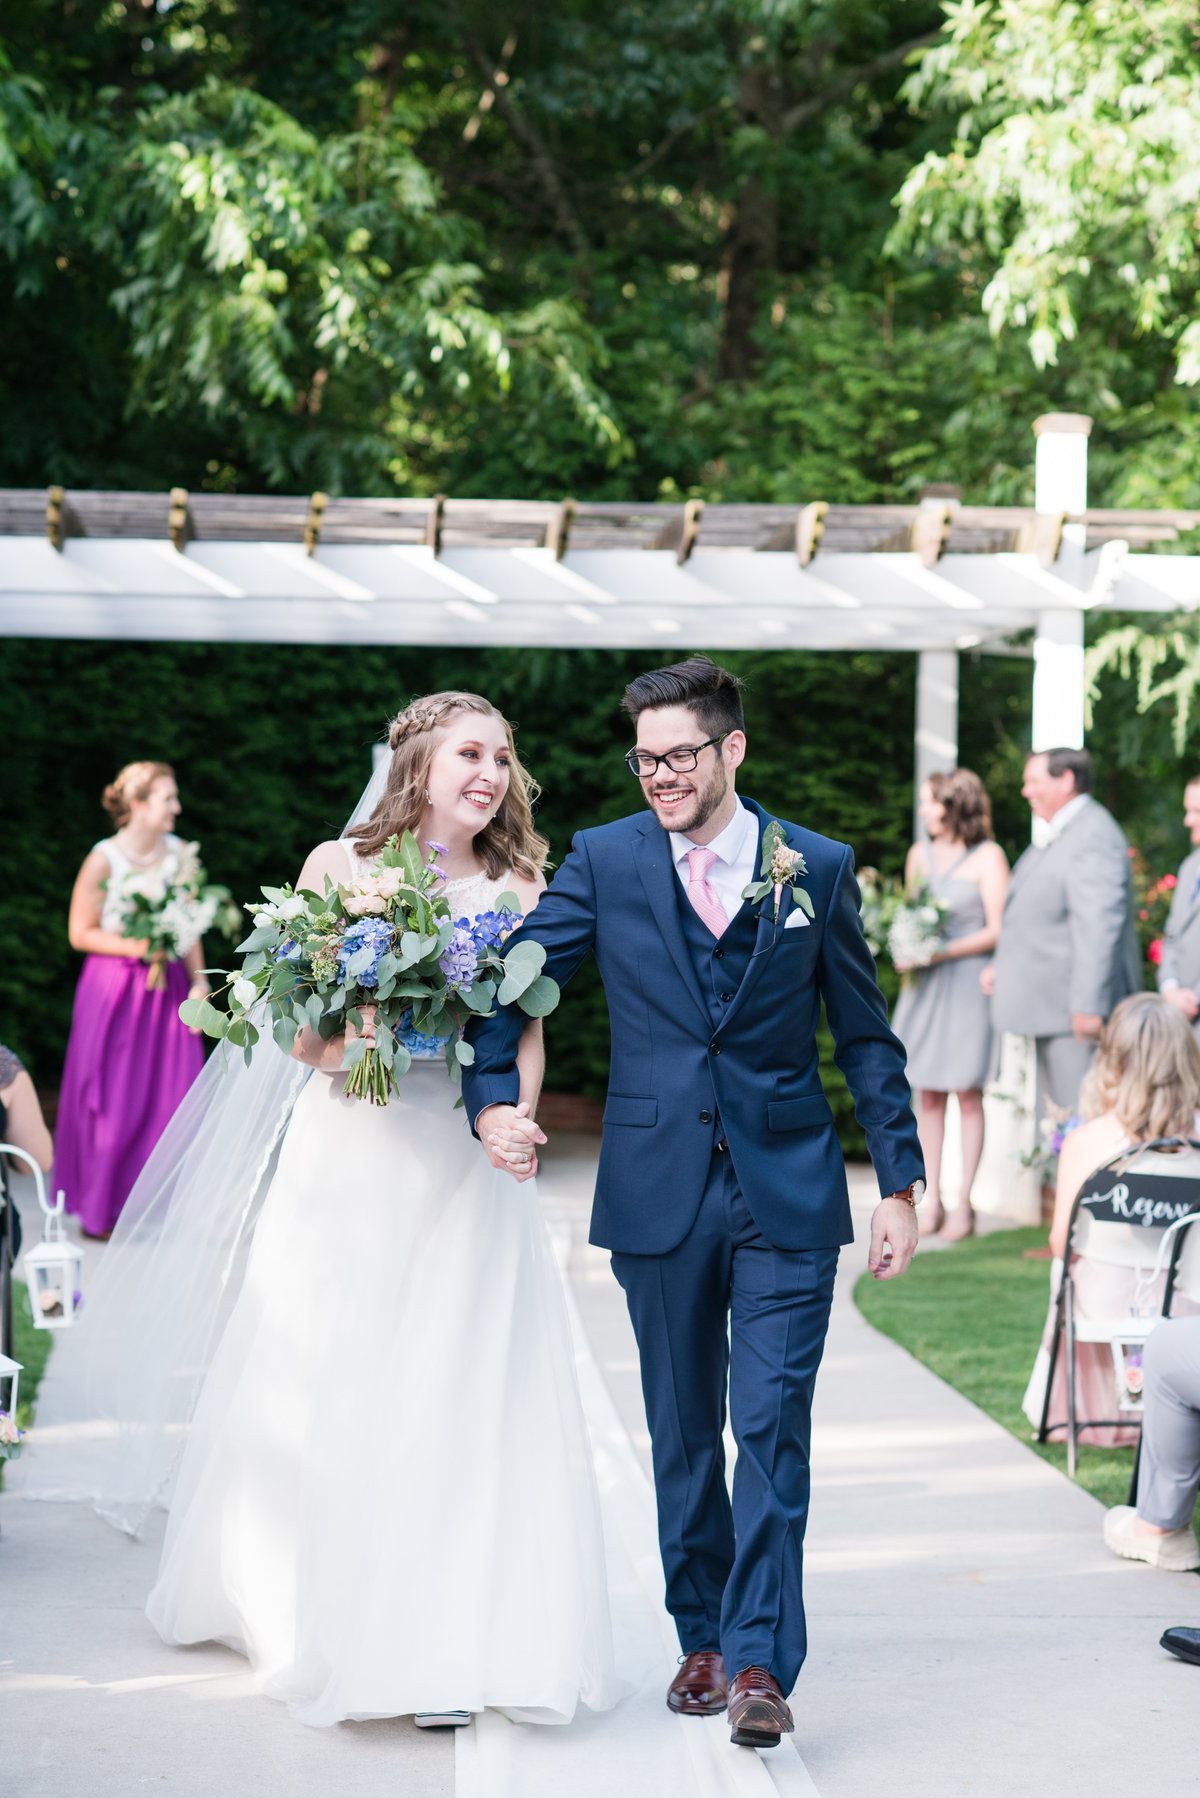 a bride holding a colorful wedding bouquet holding hands with her husband wearing a navy blue suit walking down the aisle after they kissed at Gardens at Gray Gables